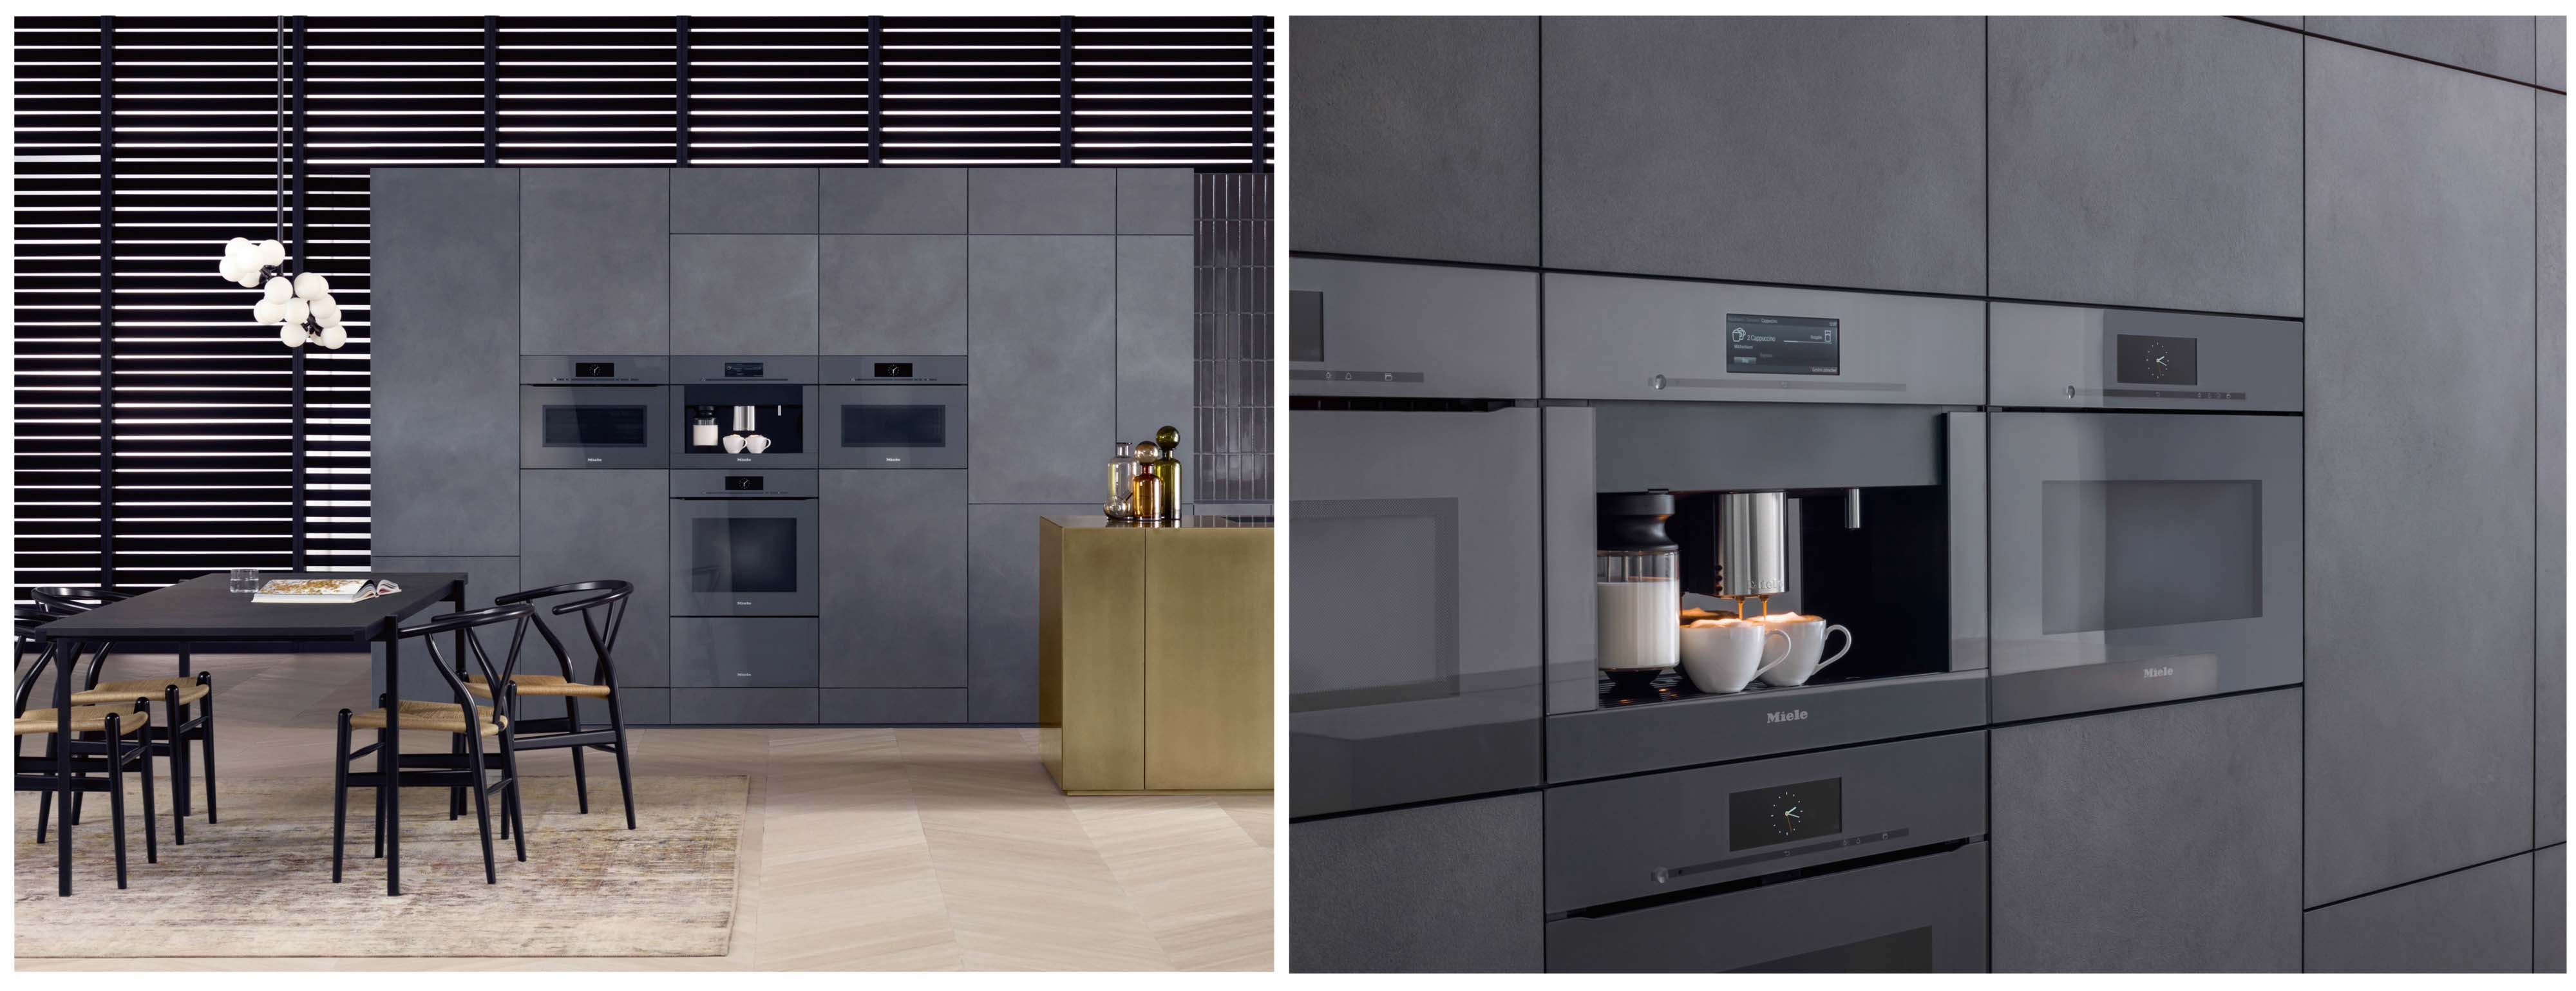 Miele ArtLine Appliances